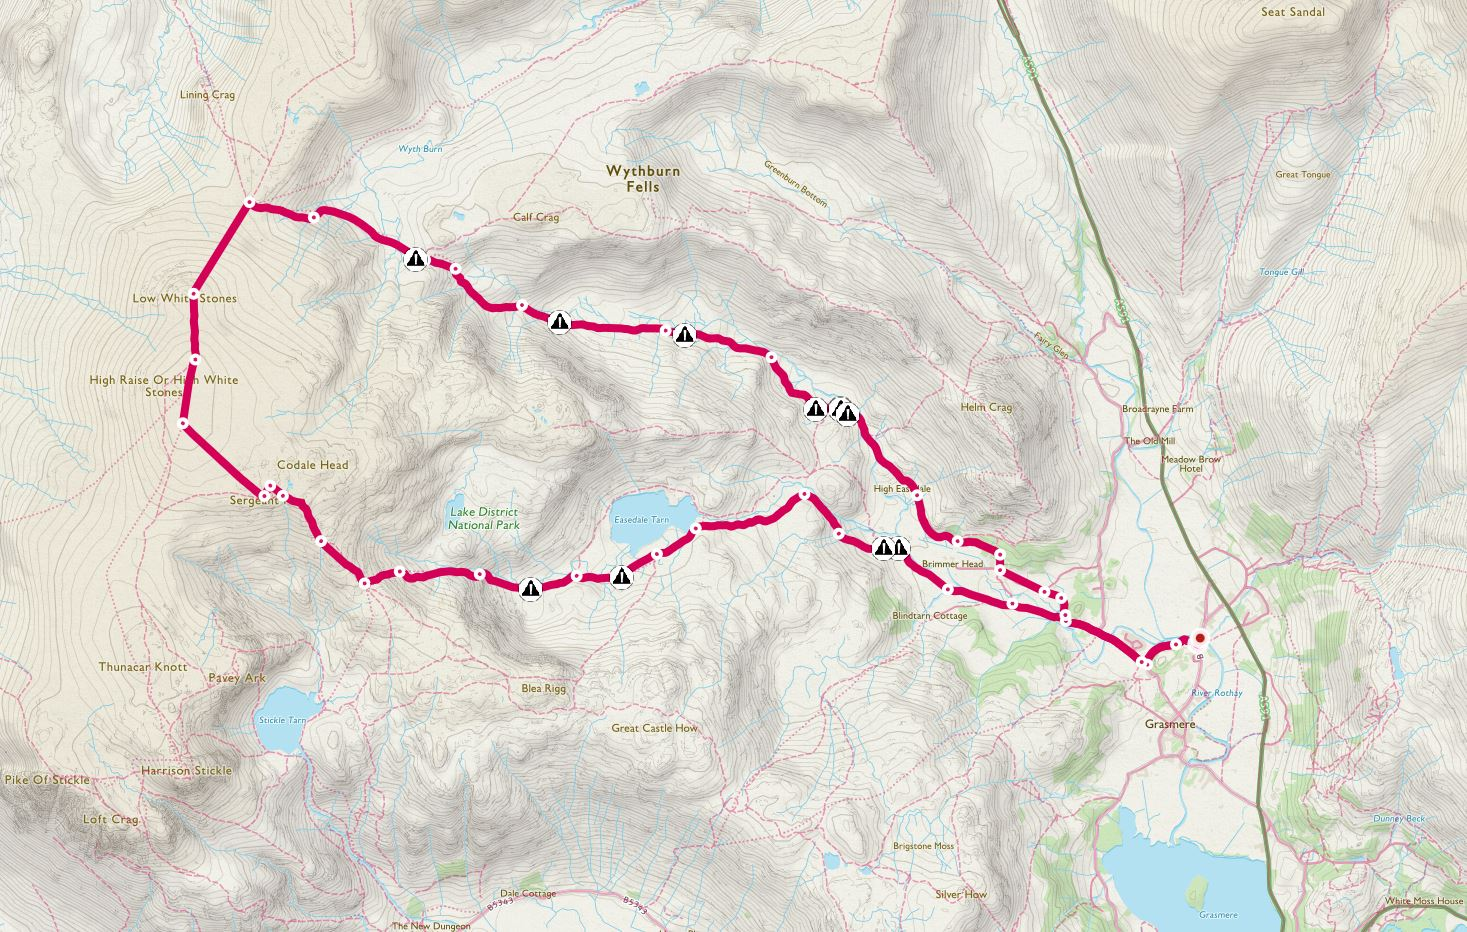 The route from Grasmere